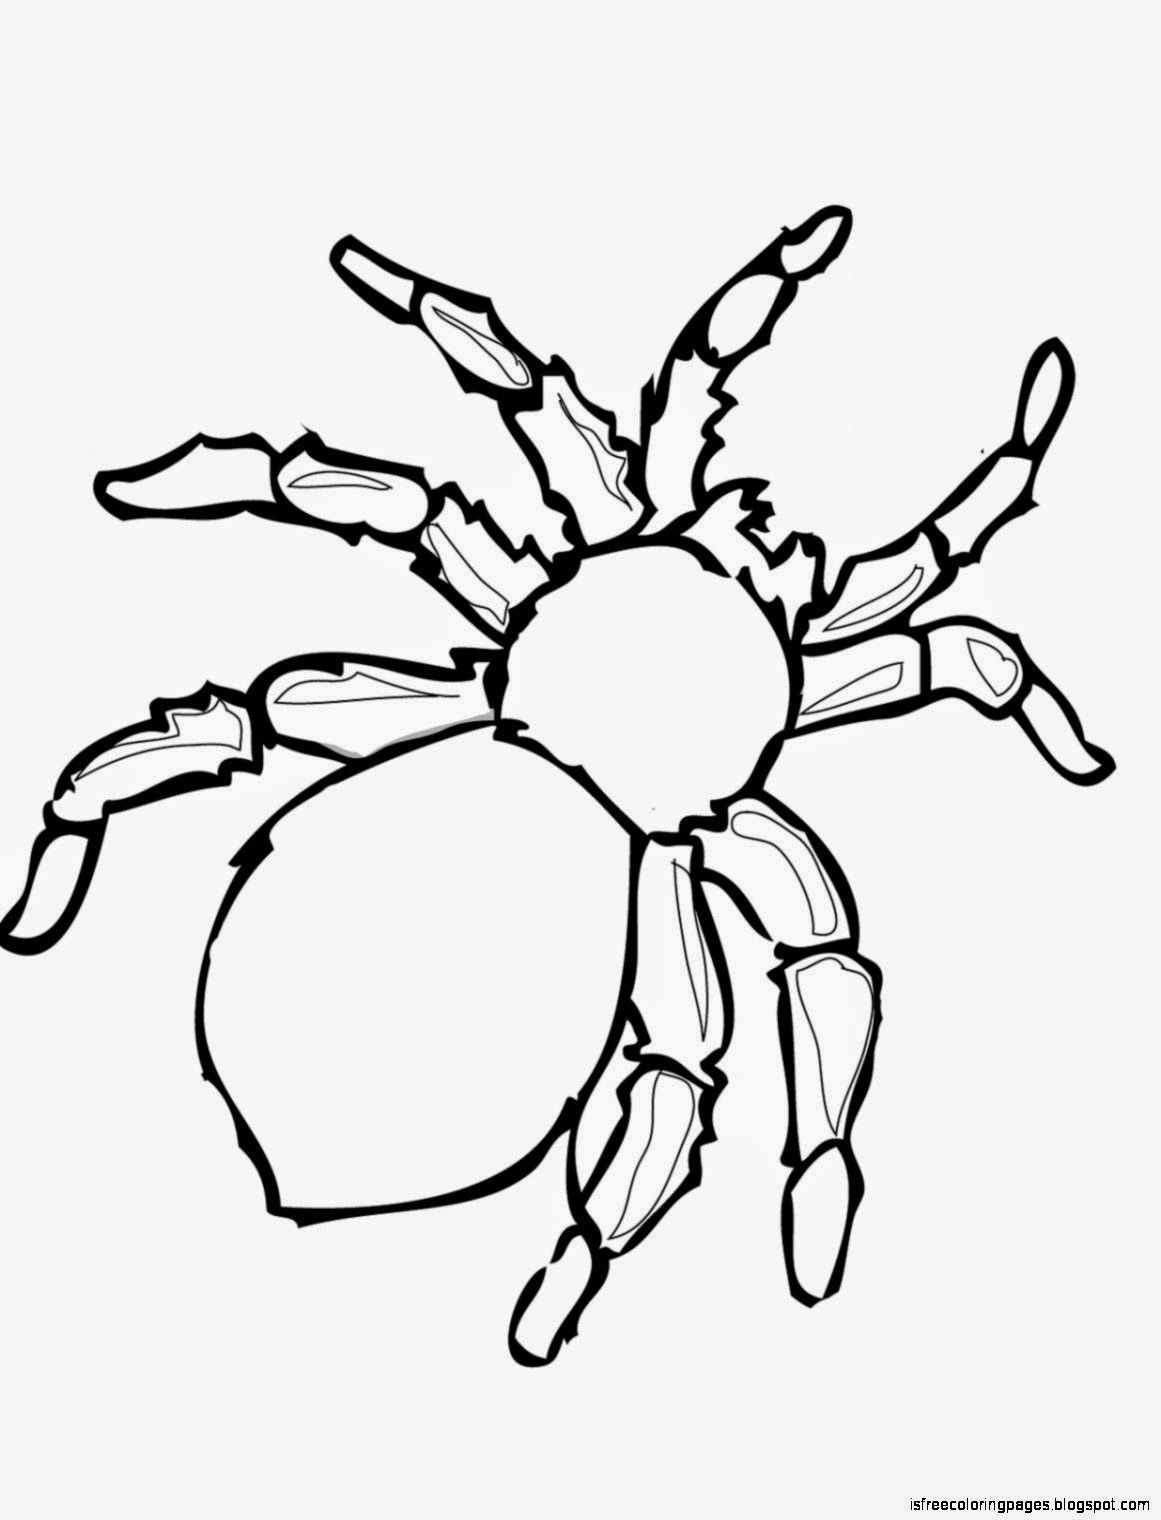 Adult Cute Free Spider Coloring Pages Gallery Images top spiders coloring pages free printable spider for kids gallery images